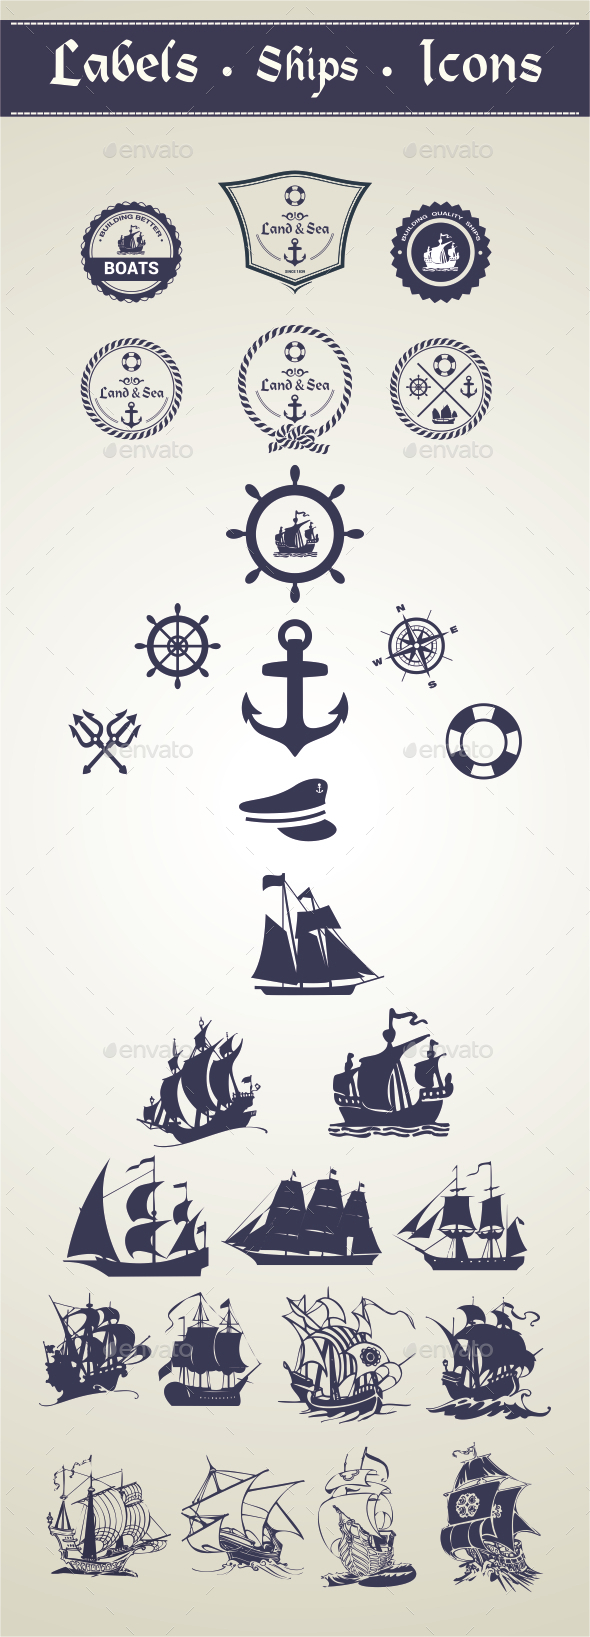 Oceanic Label and Ships - Decorative Vectors